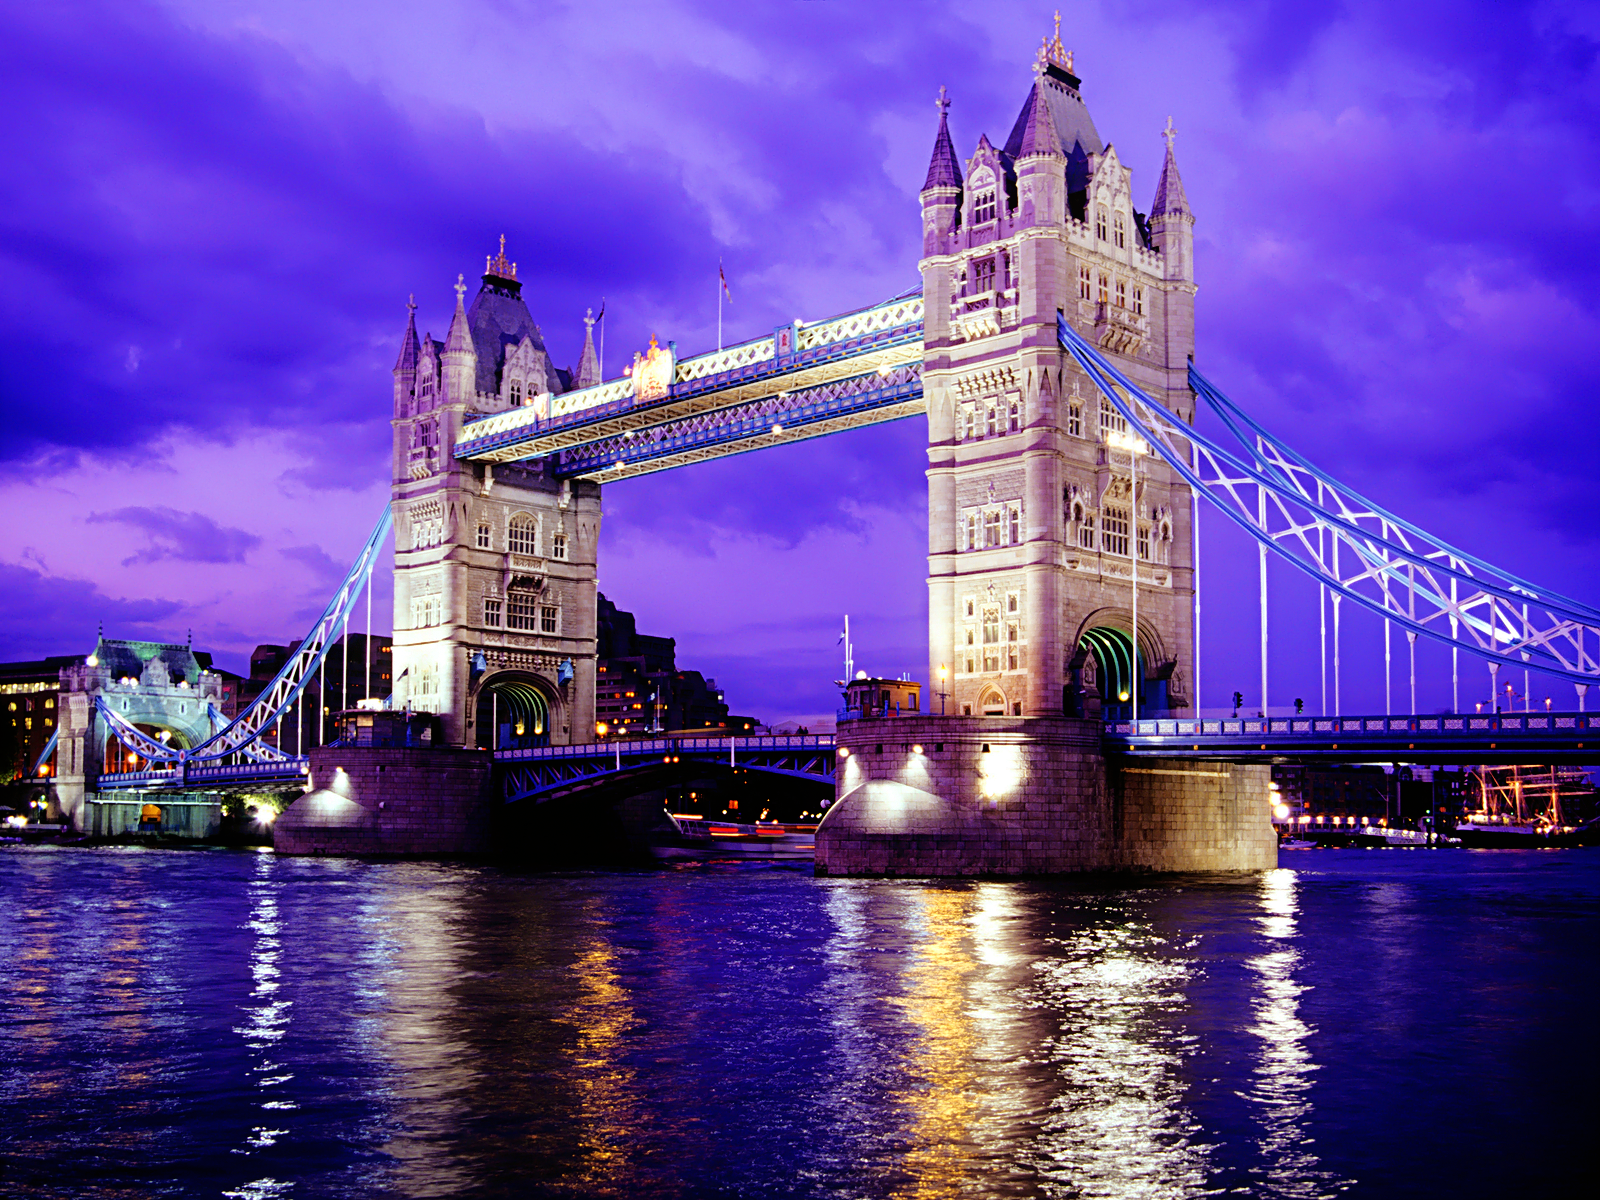 Tower Of London Bridge Wallpaper